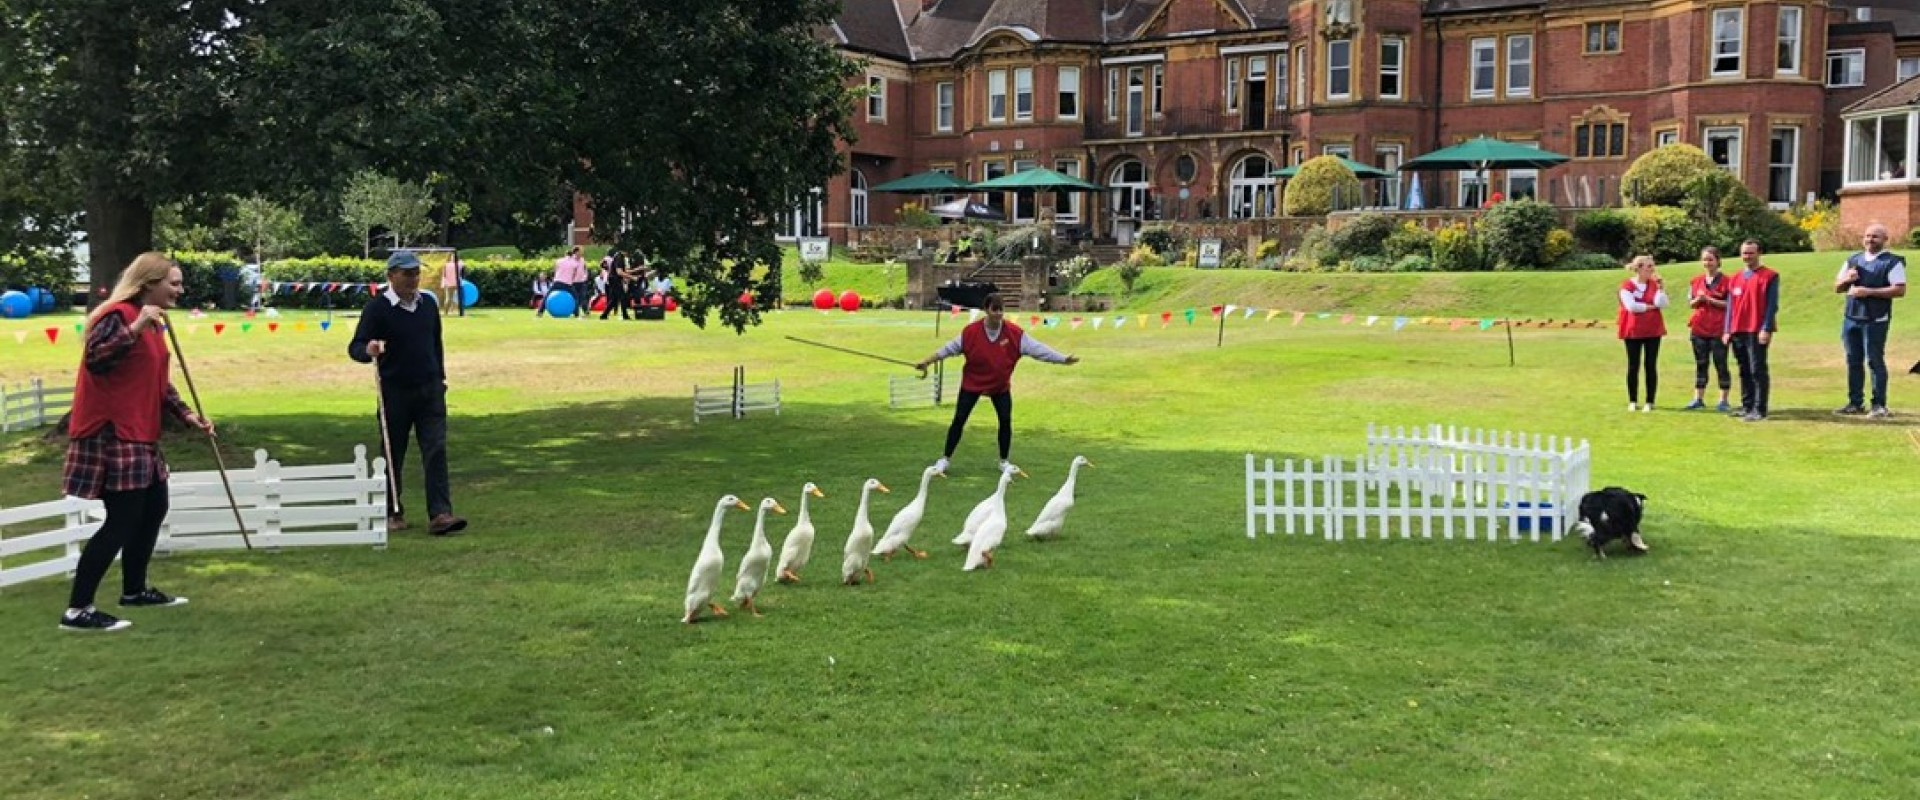 Team Building Duck Herding at Moor Hall Hotel Spa